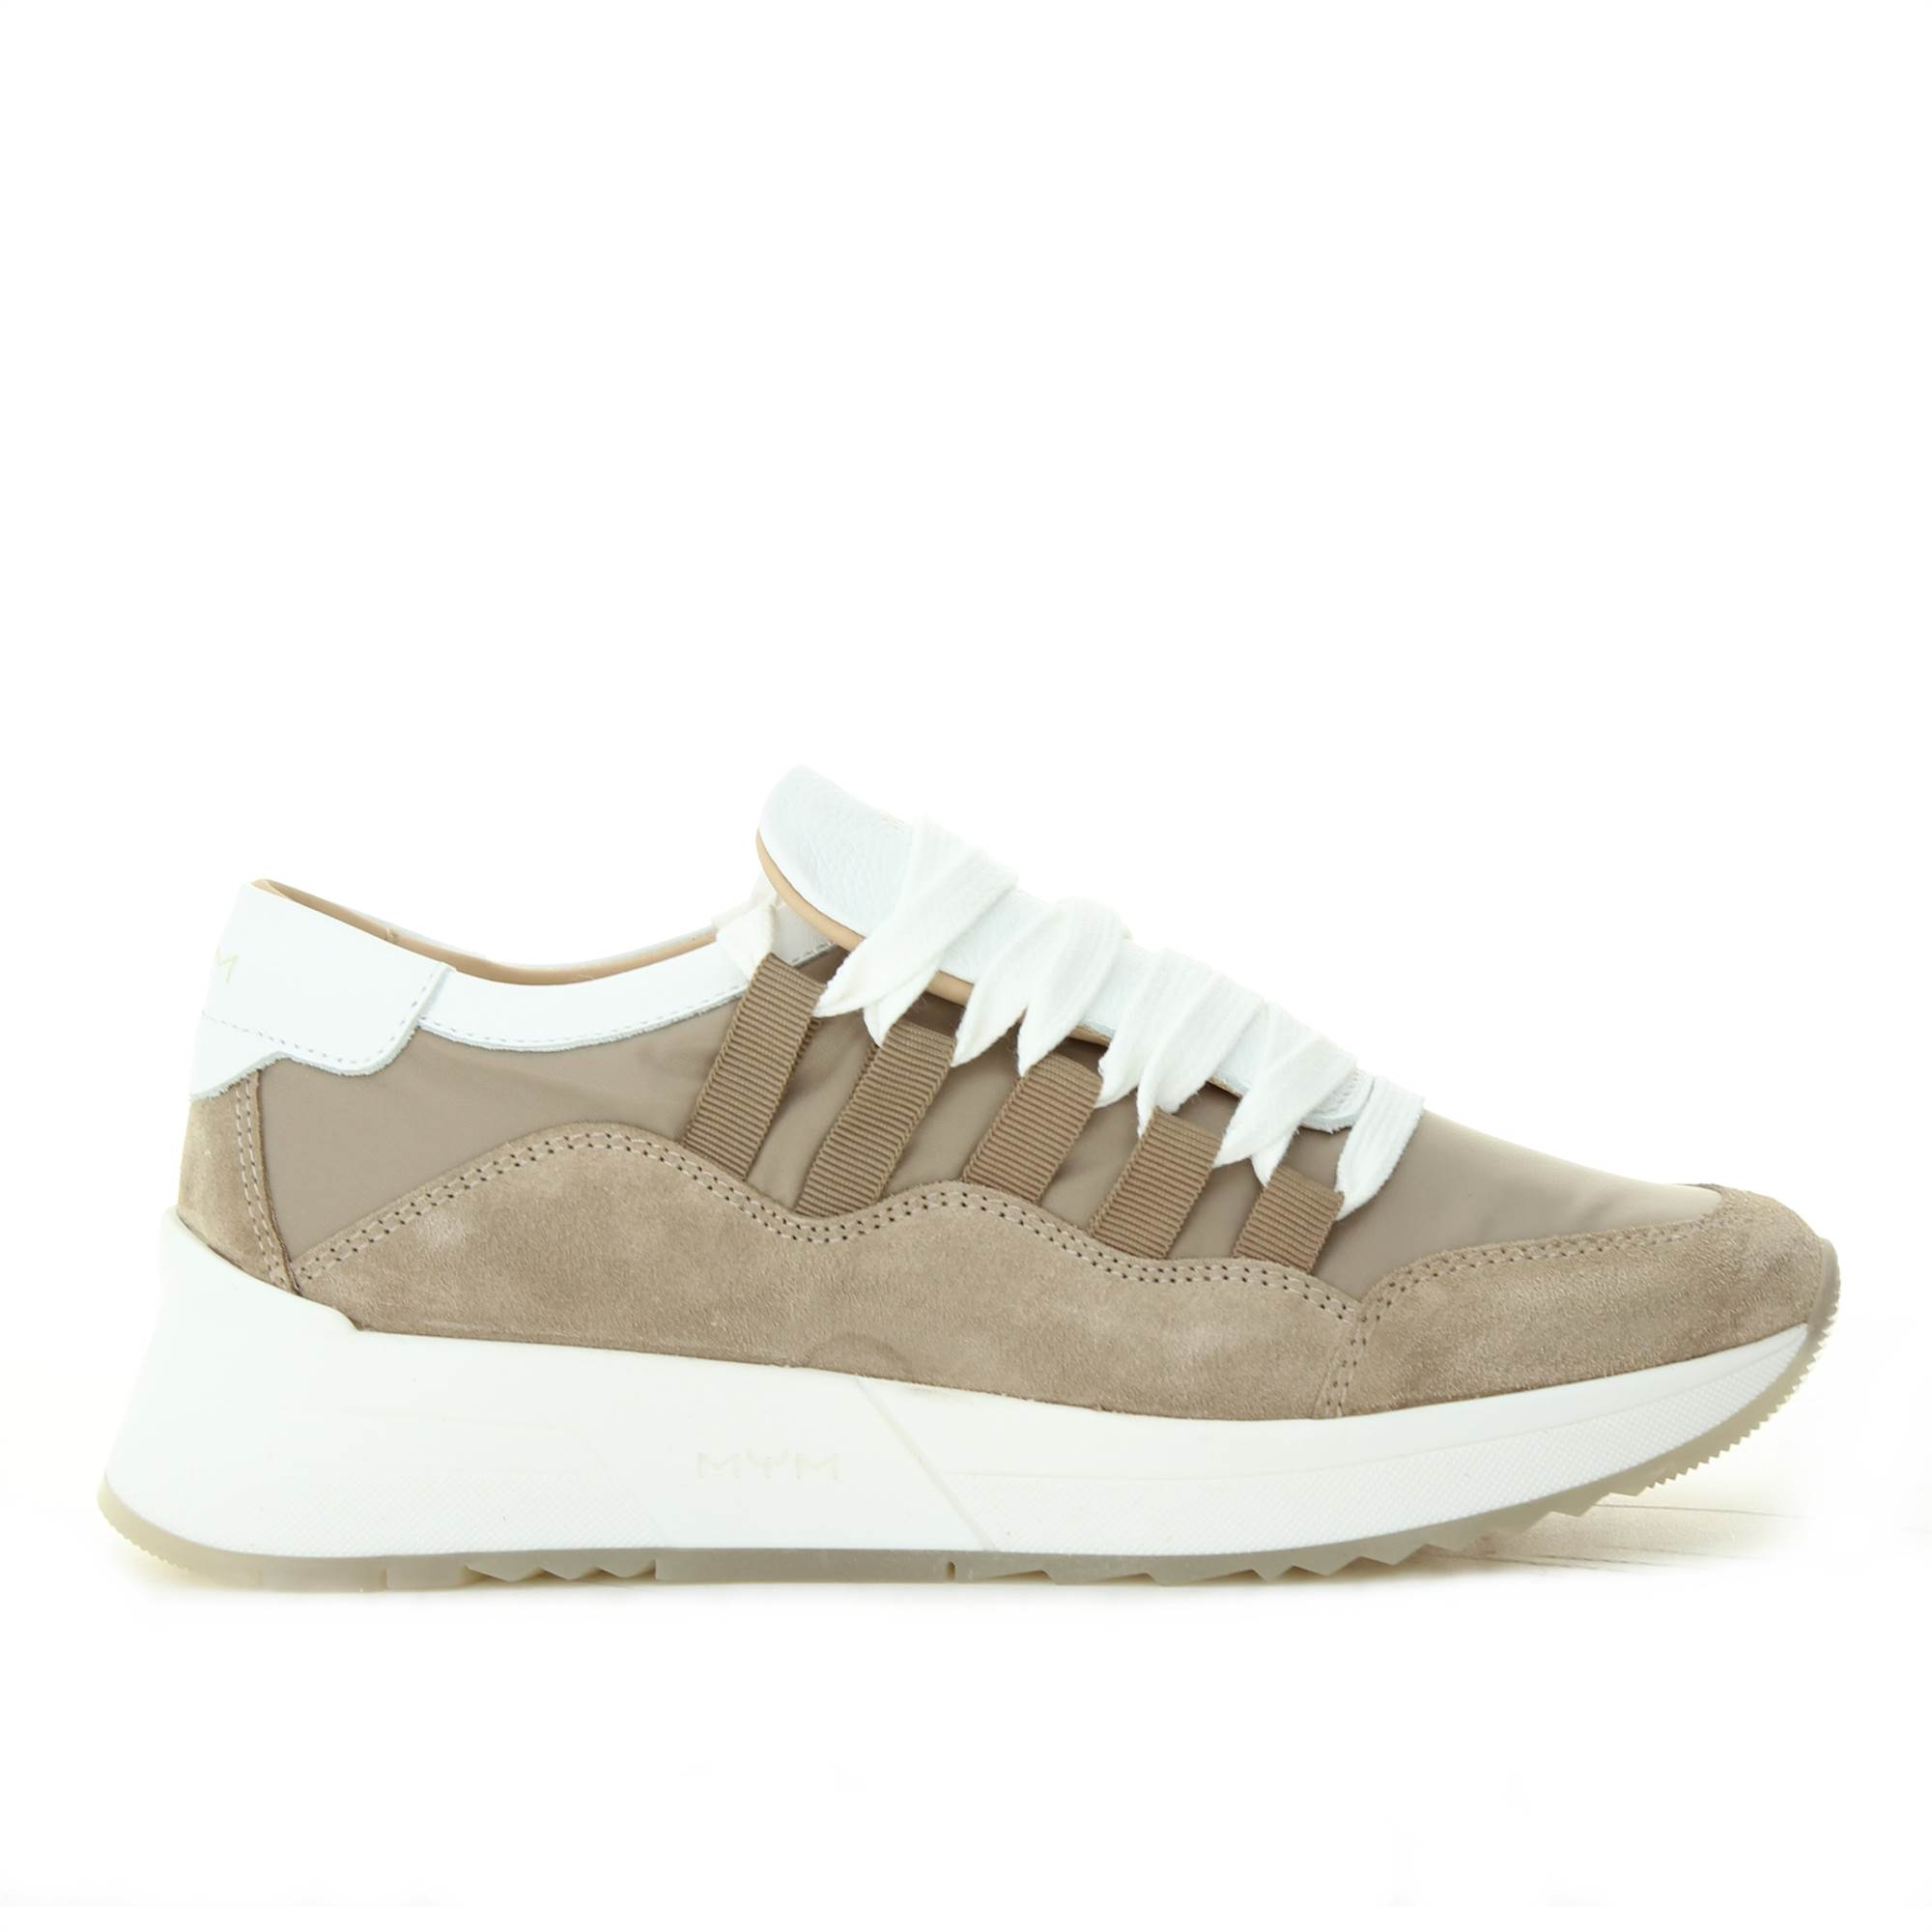 MYM ITALIA WILLY TAUPE BIANCO Shoes Woman MYM ITALIA SNEAKER